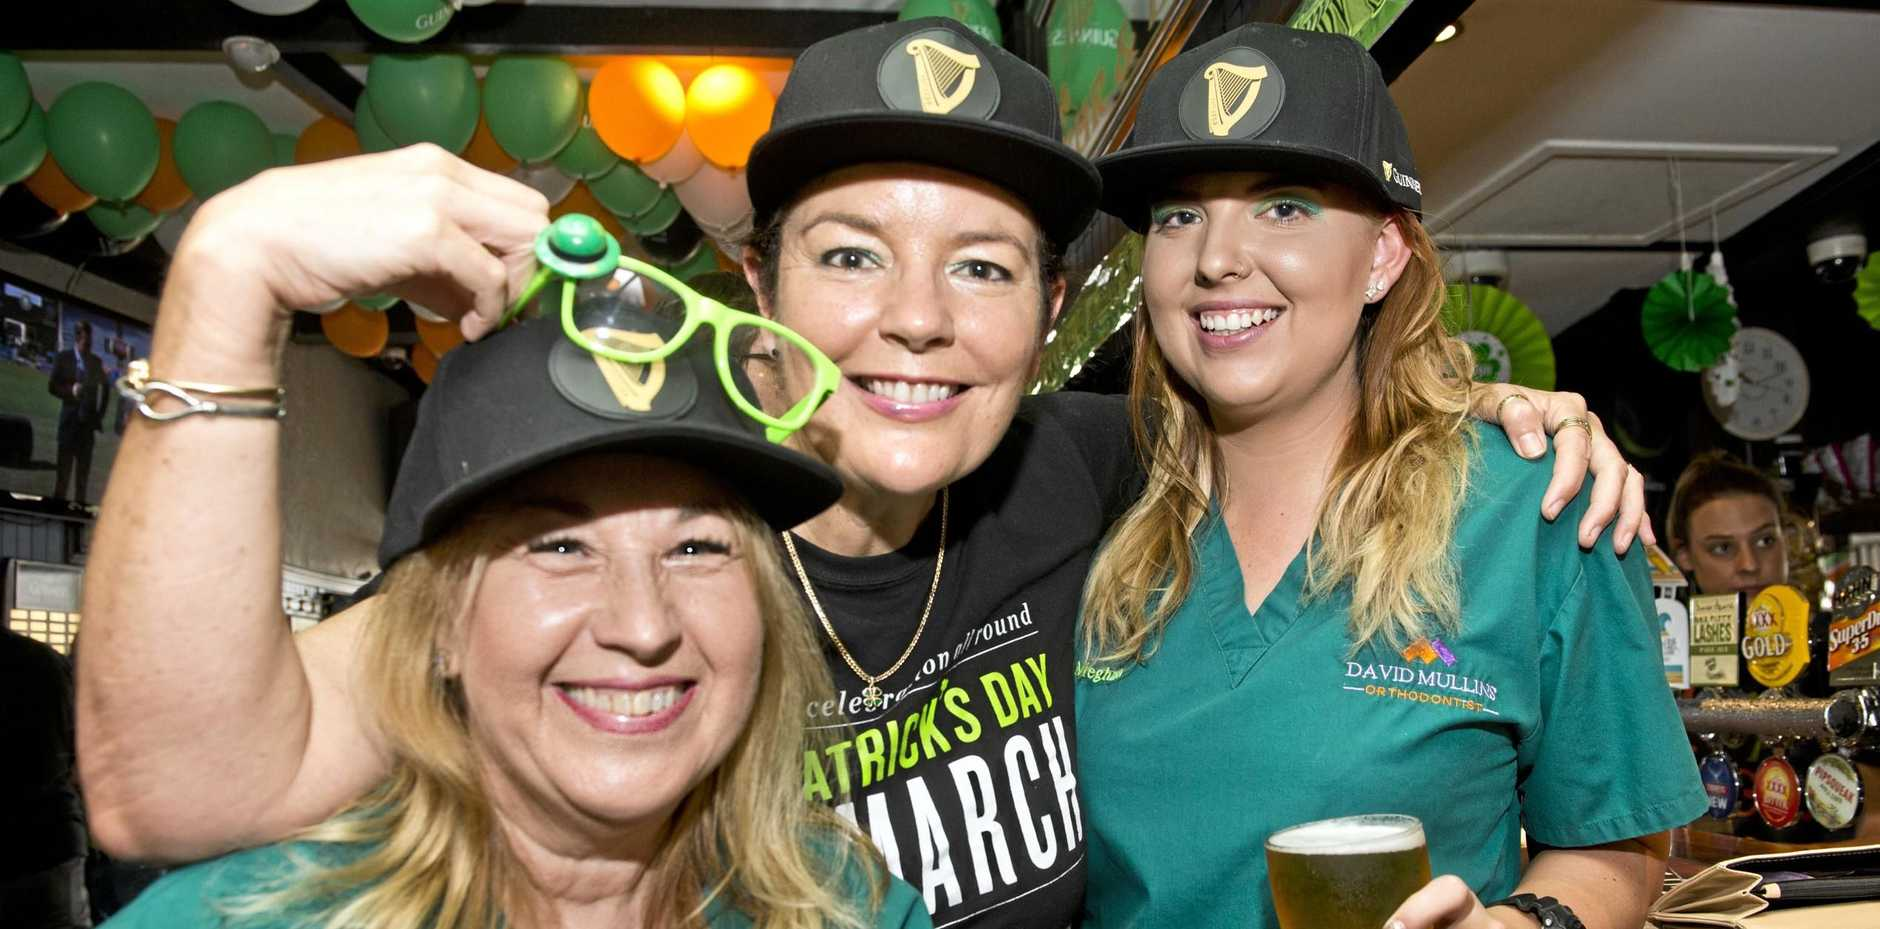 GO GREEN: Celebrating St Patrick's Day at the Irish Club Hotel are (from left) Karyn Iseppi, Katrina Archer and Meghan Sutton.